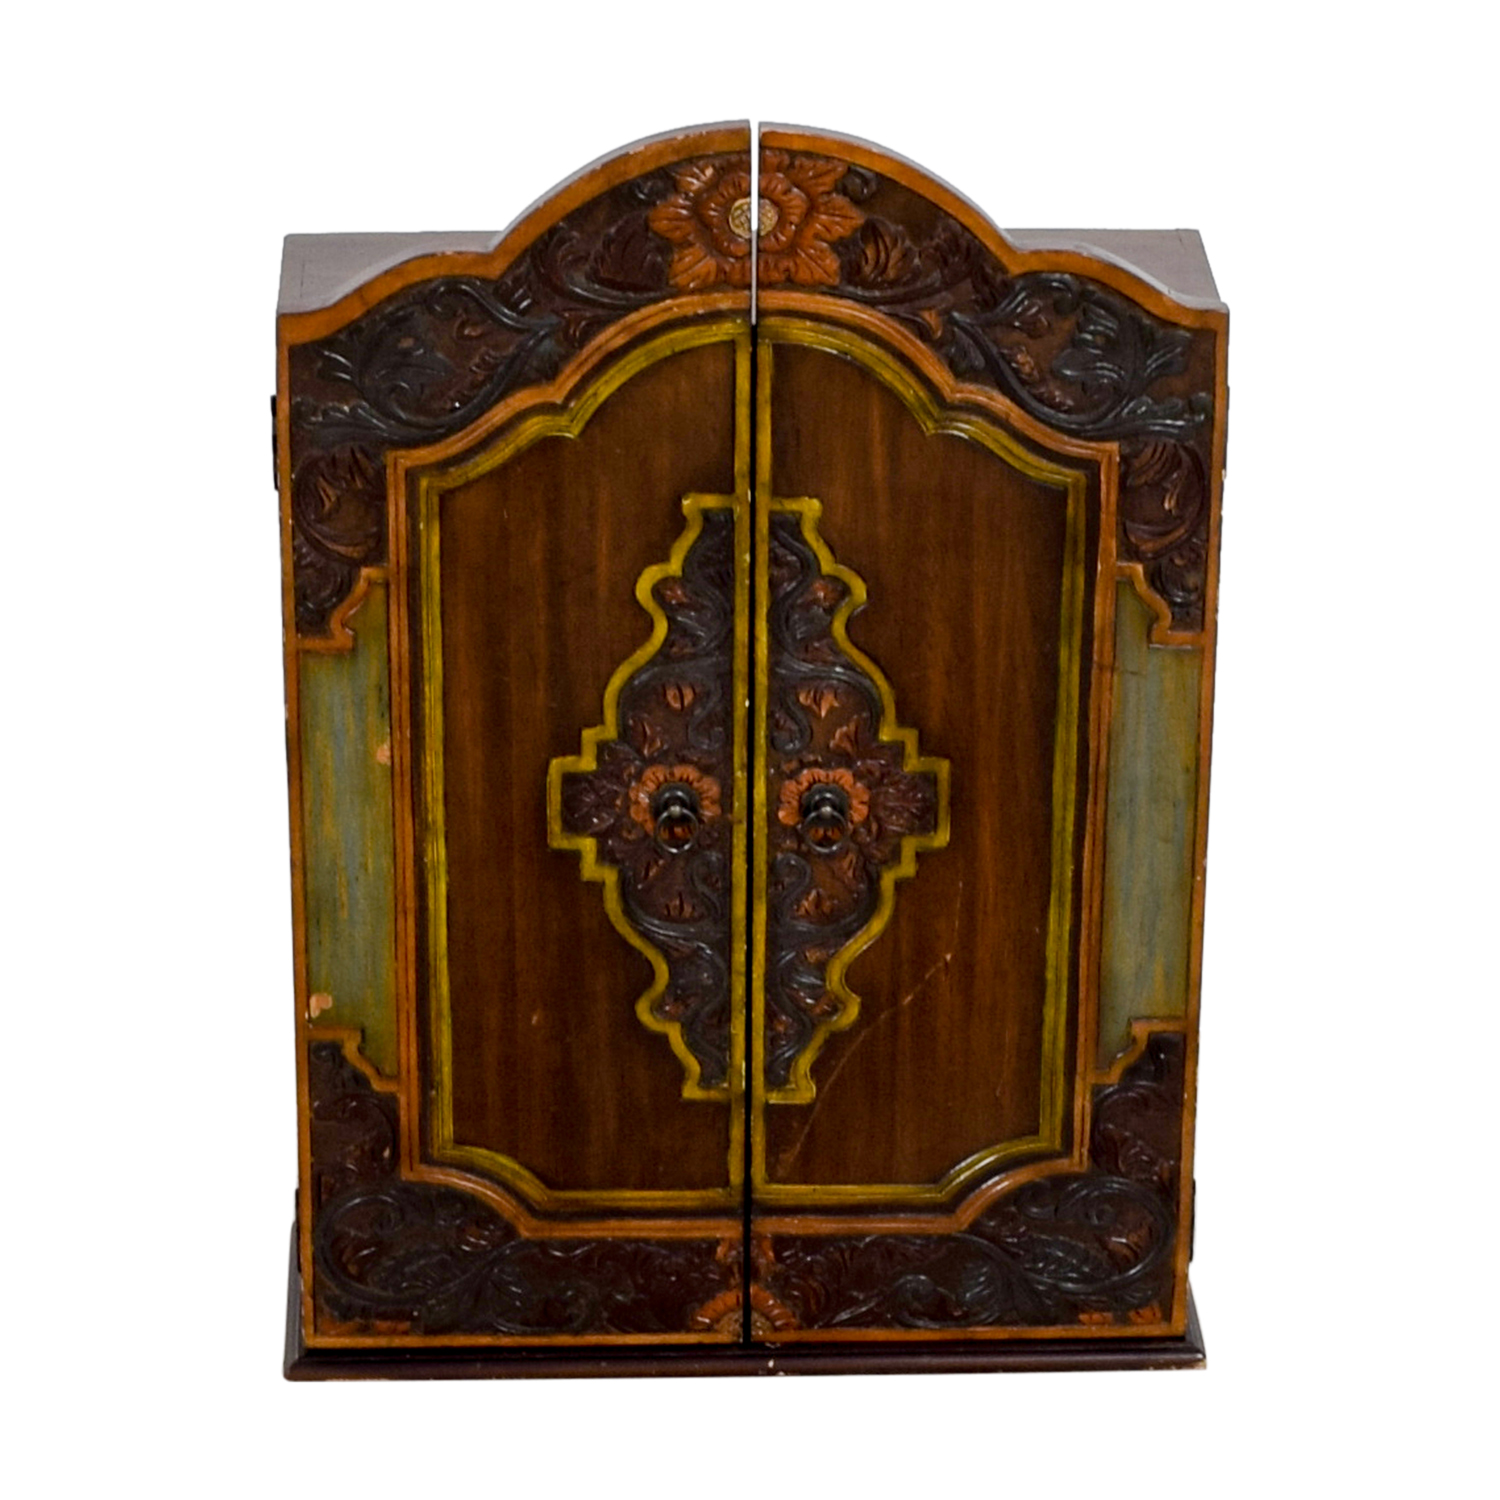 Pier 1 Imports Pier 1 Imports Carved Wood Jewelry Cabinet Mirrors